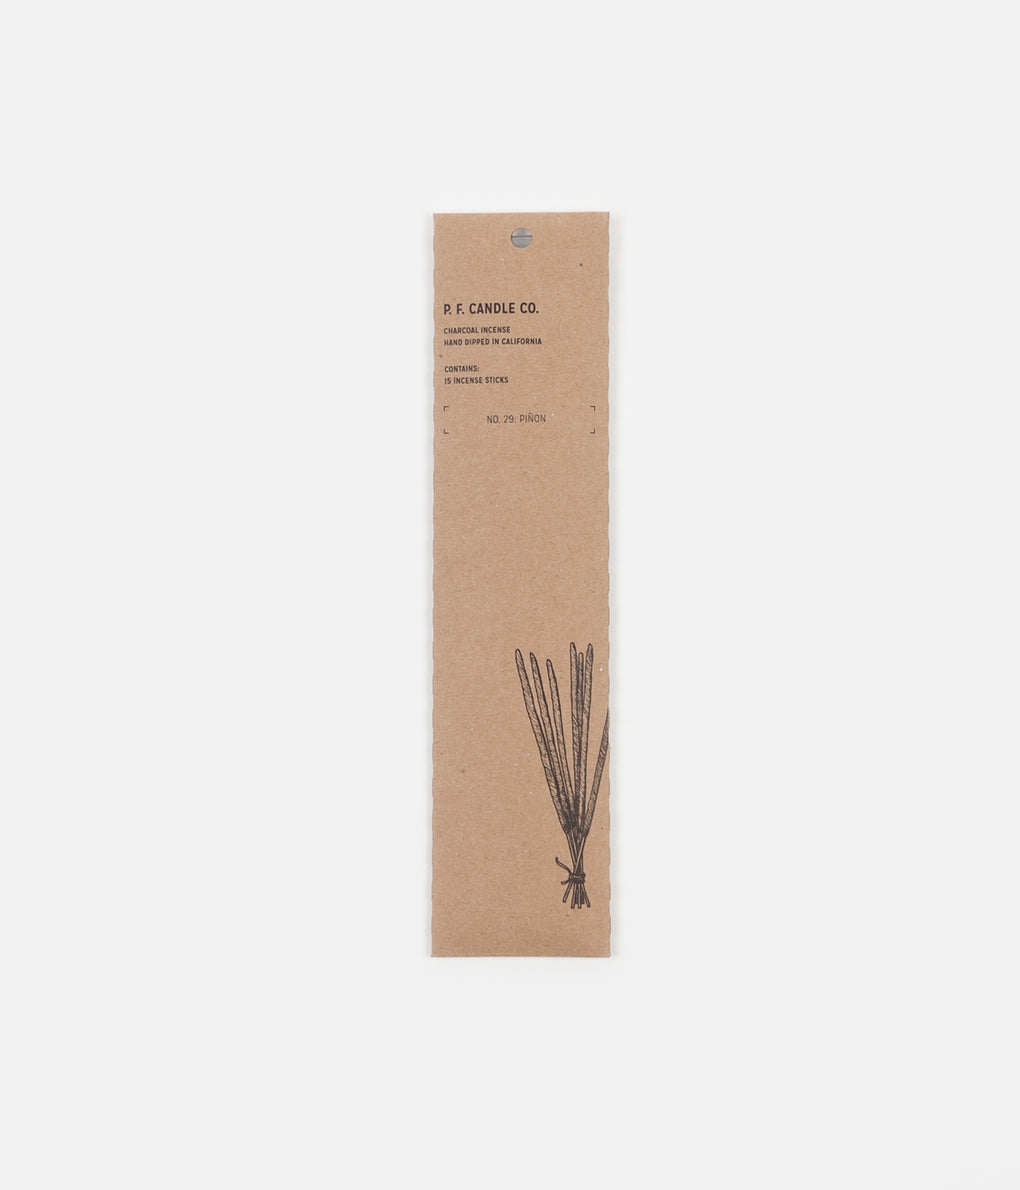 P.F. Candle Co. No. 29 Pinon Incense - 15 Pack